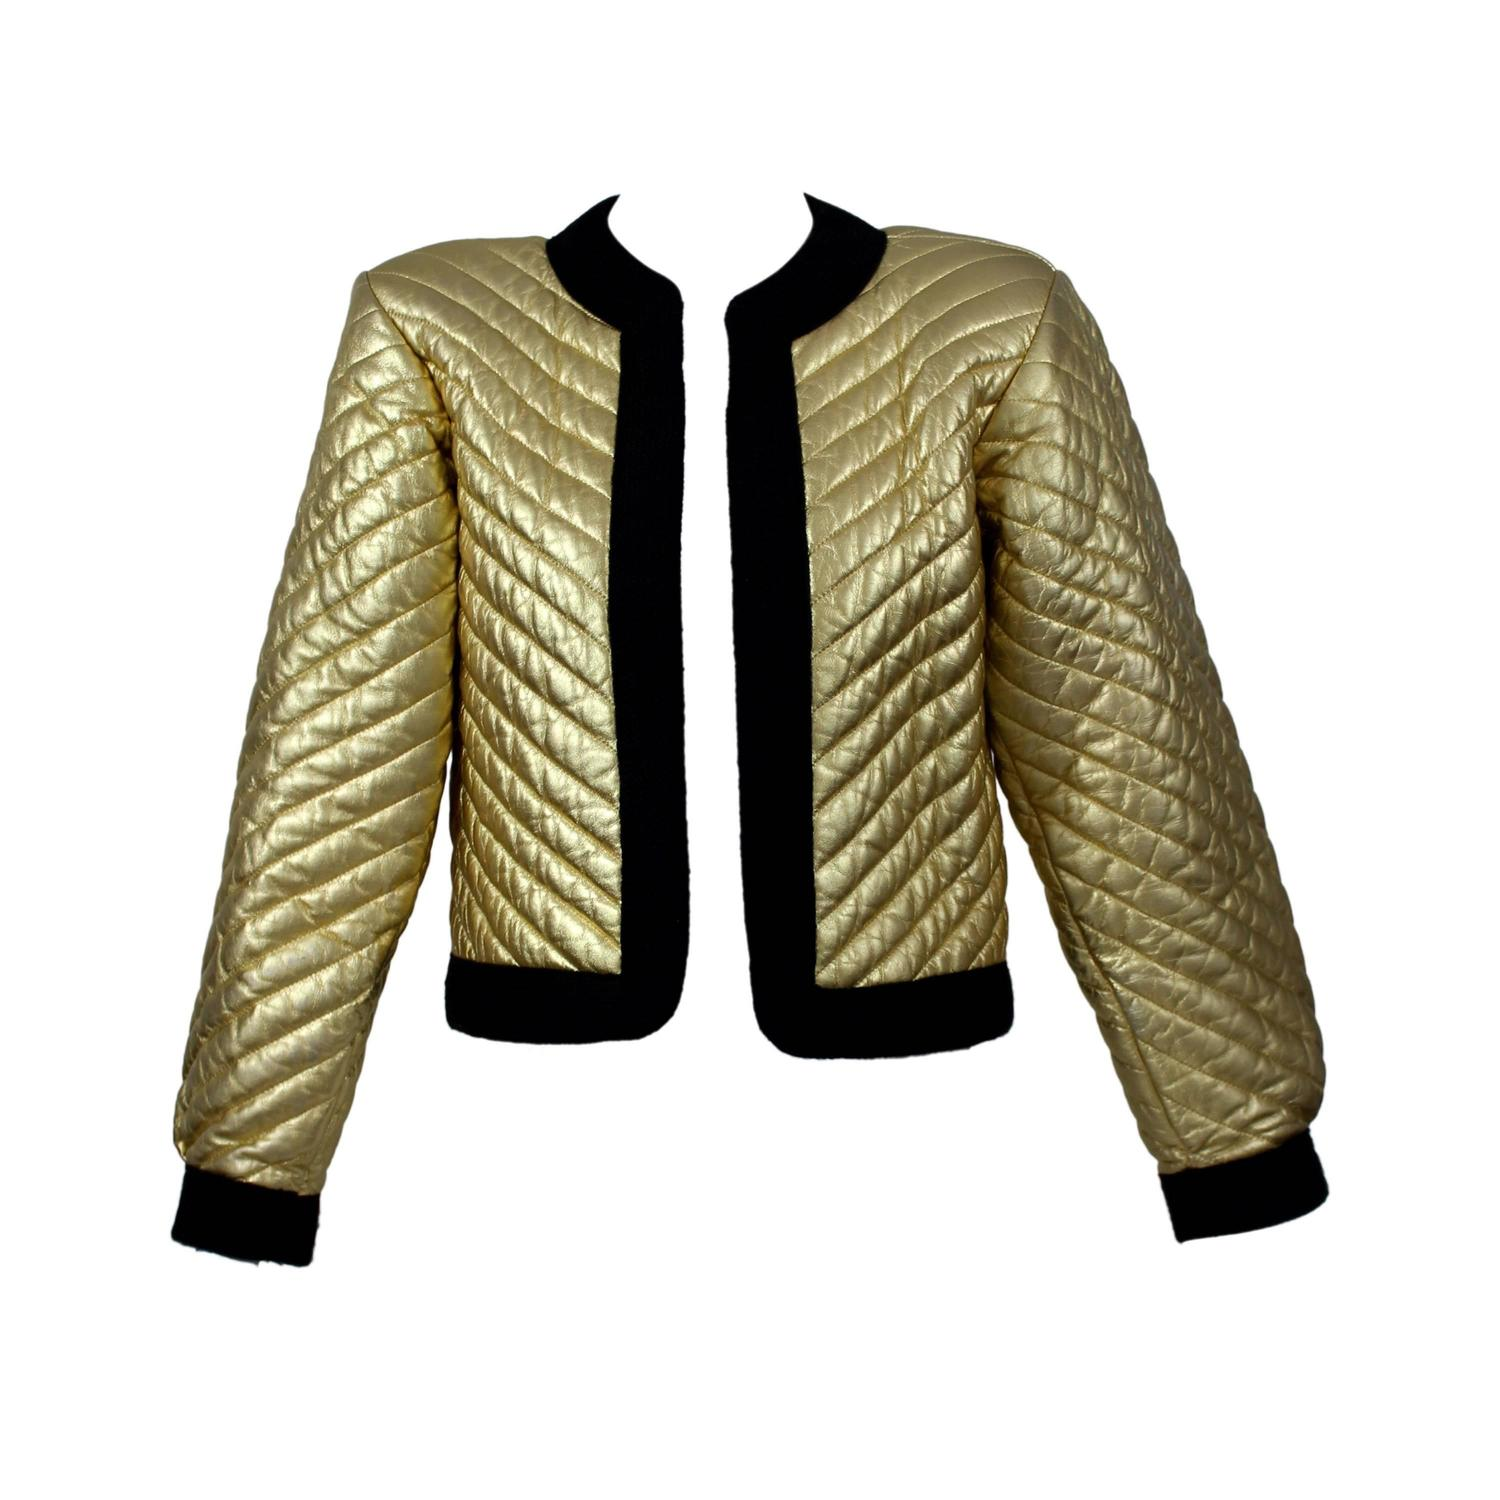 5b4a5c0207b Vintage YSL Metallic Gold Quilted Leather Bomber Jacket Yves Saint Laurent  at 1stdibs